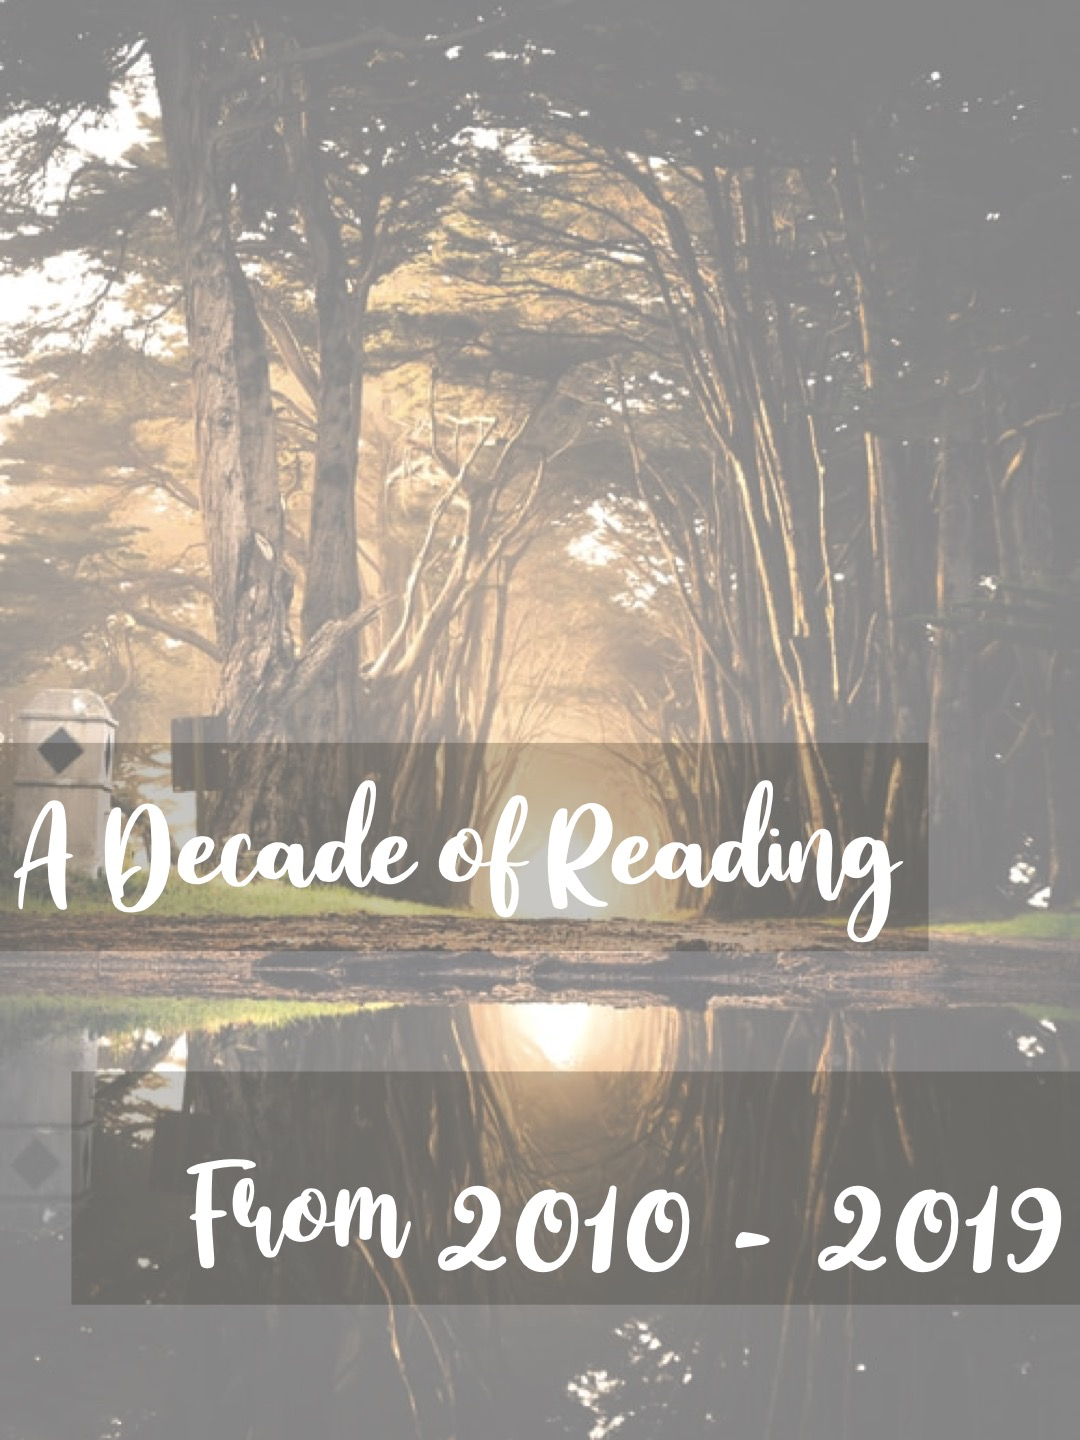 A Decade of Reading – From 2010 to 2019